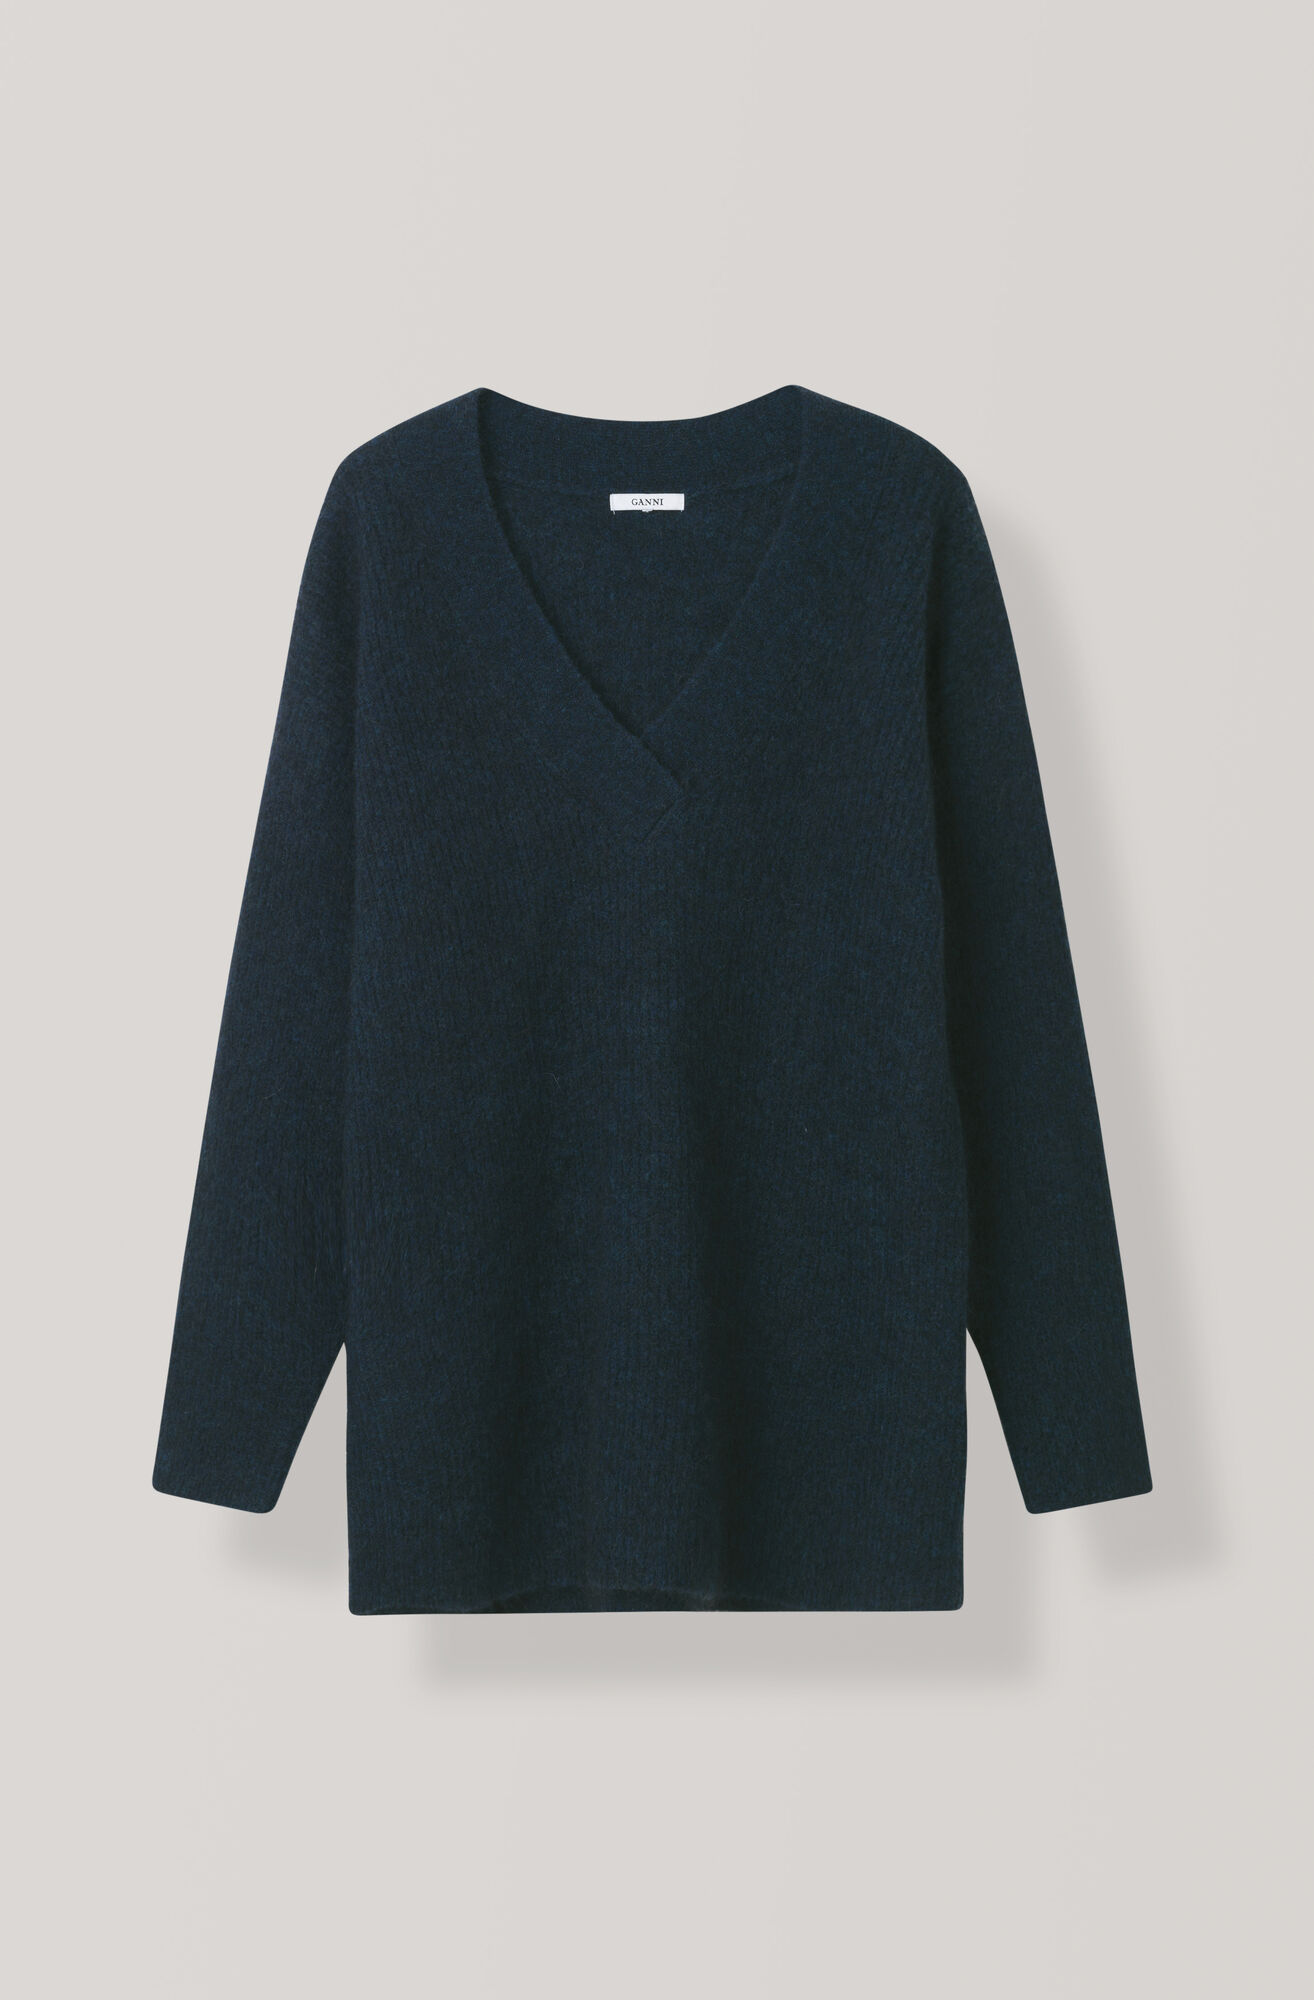 Soft Wool Knit V-neck Pullover, Total Eclipse, hi-res